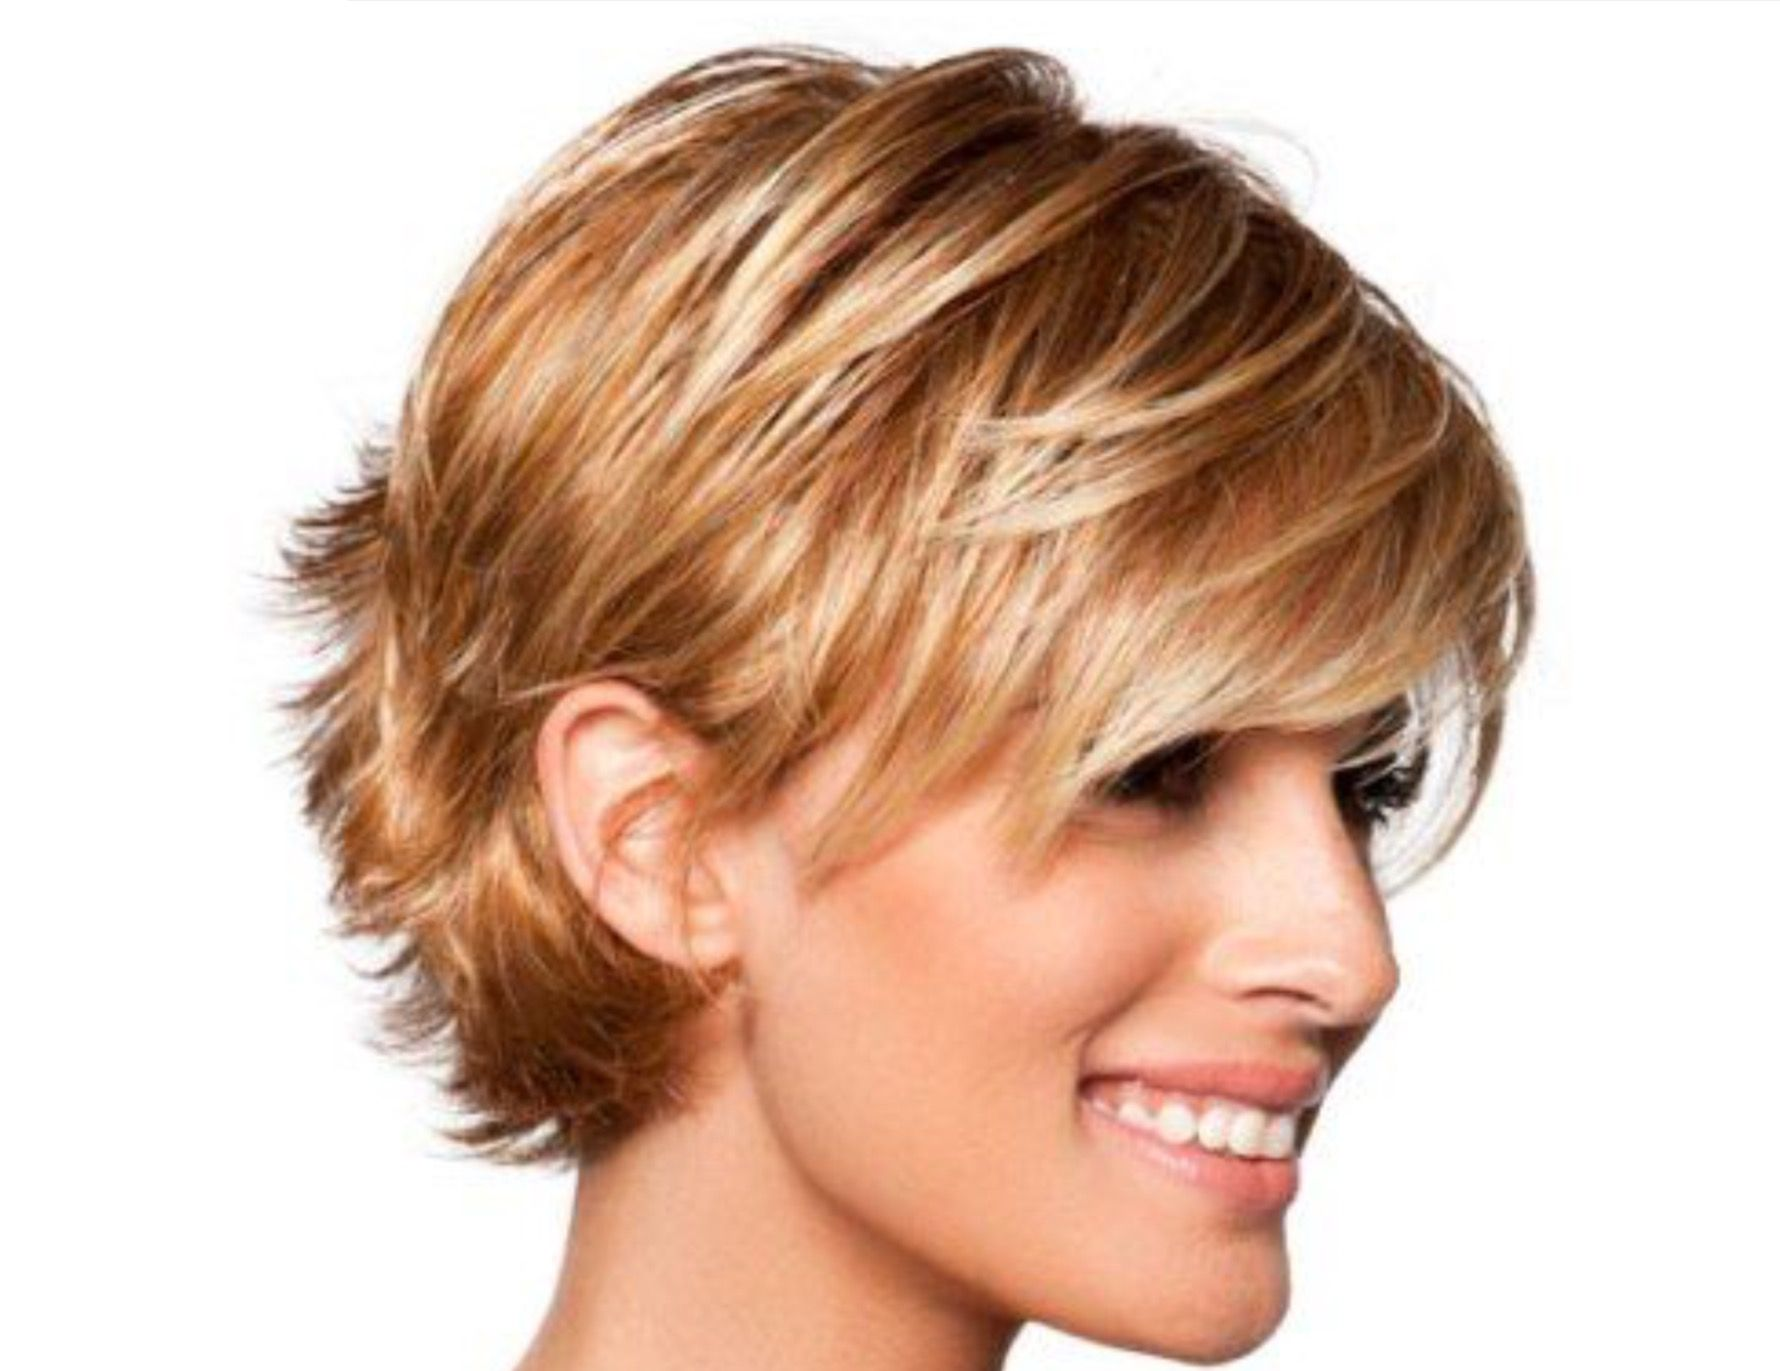 Pin by kathy doherty on hairstyles pinterest short hair hair